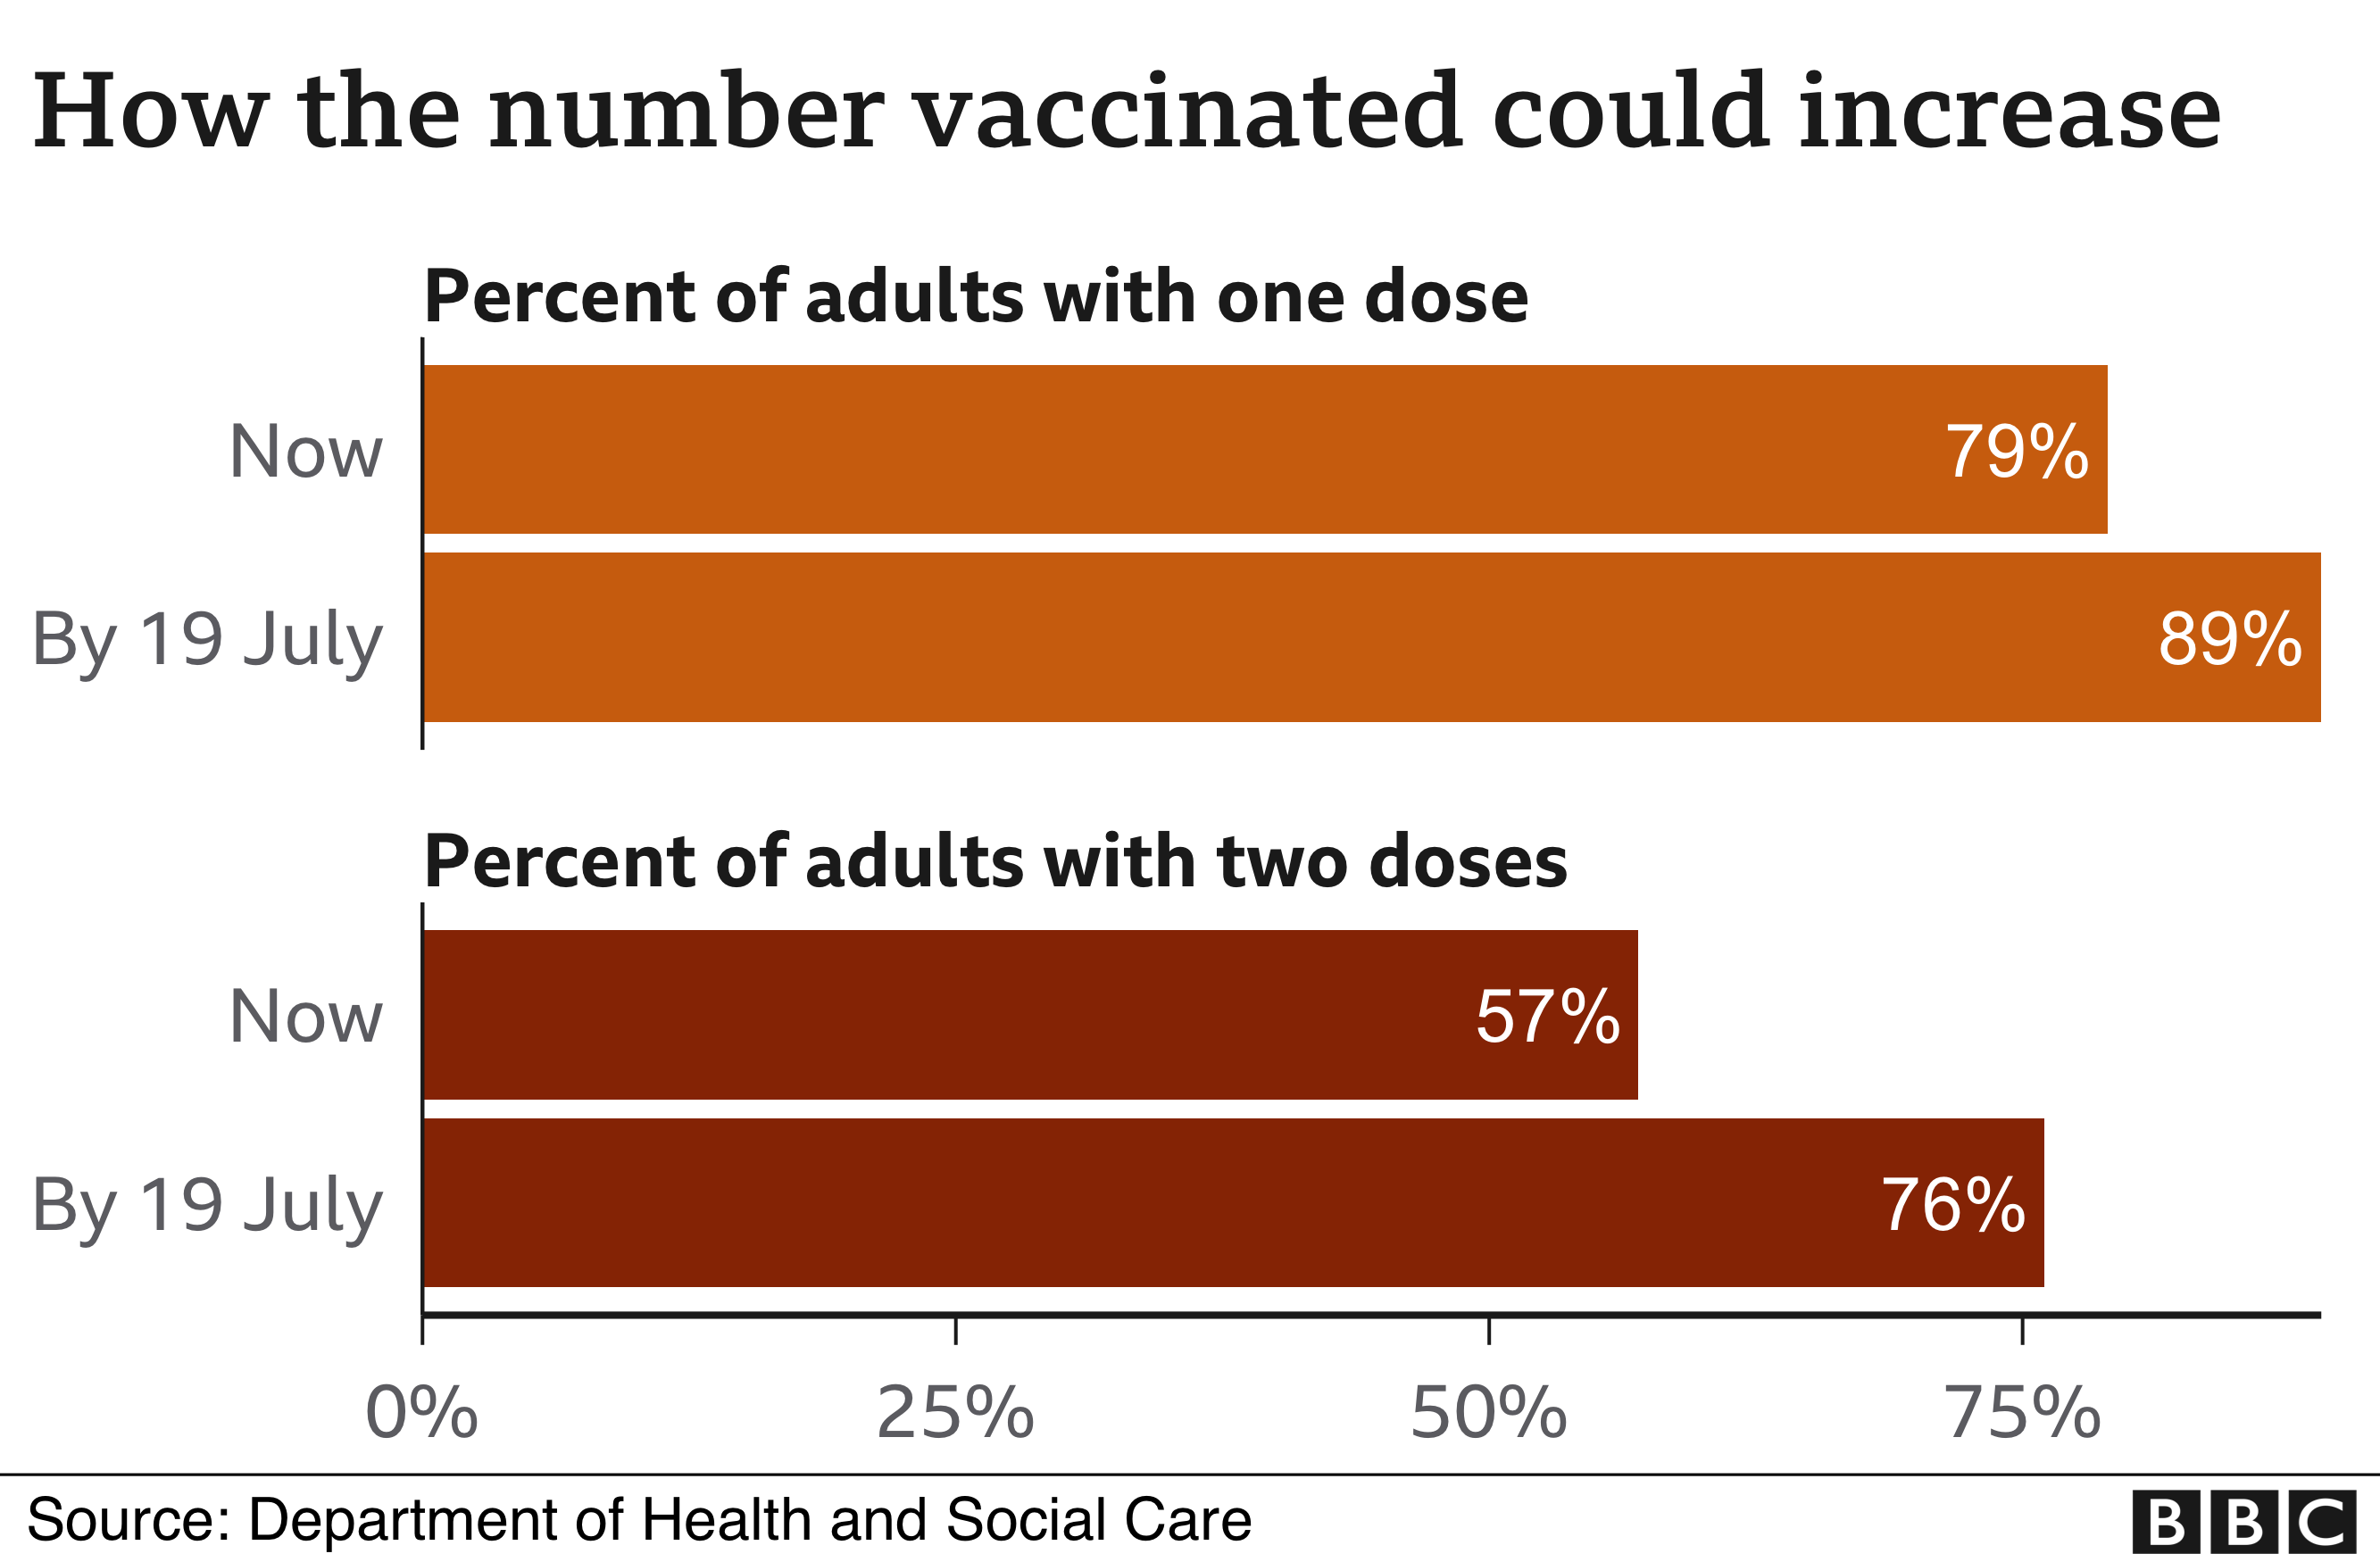 Vaccination projections